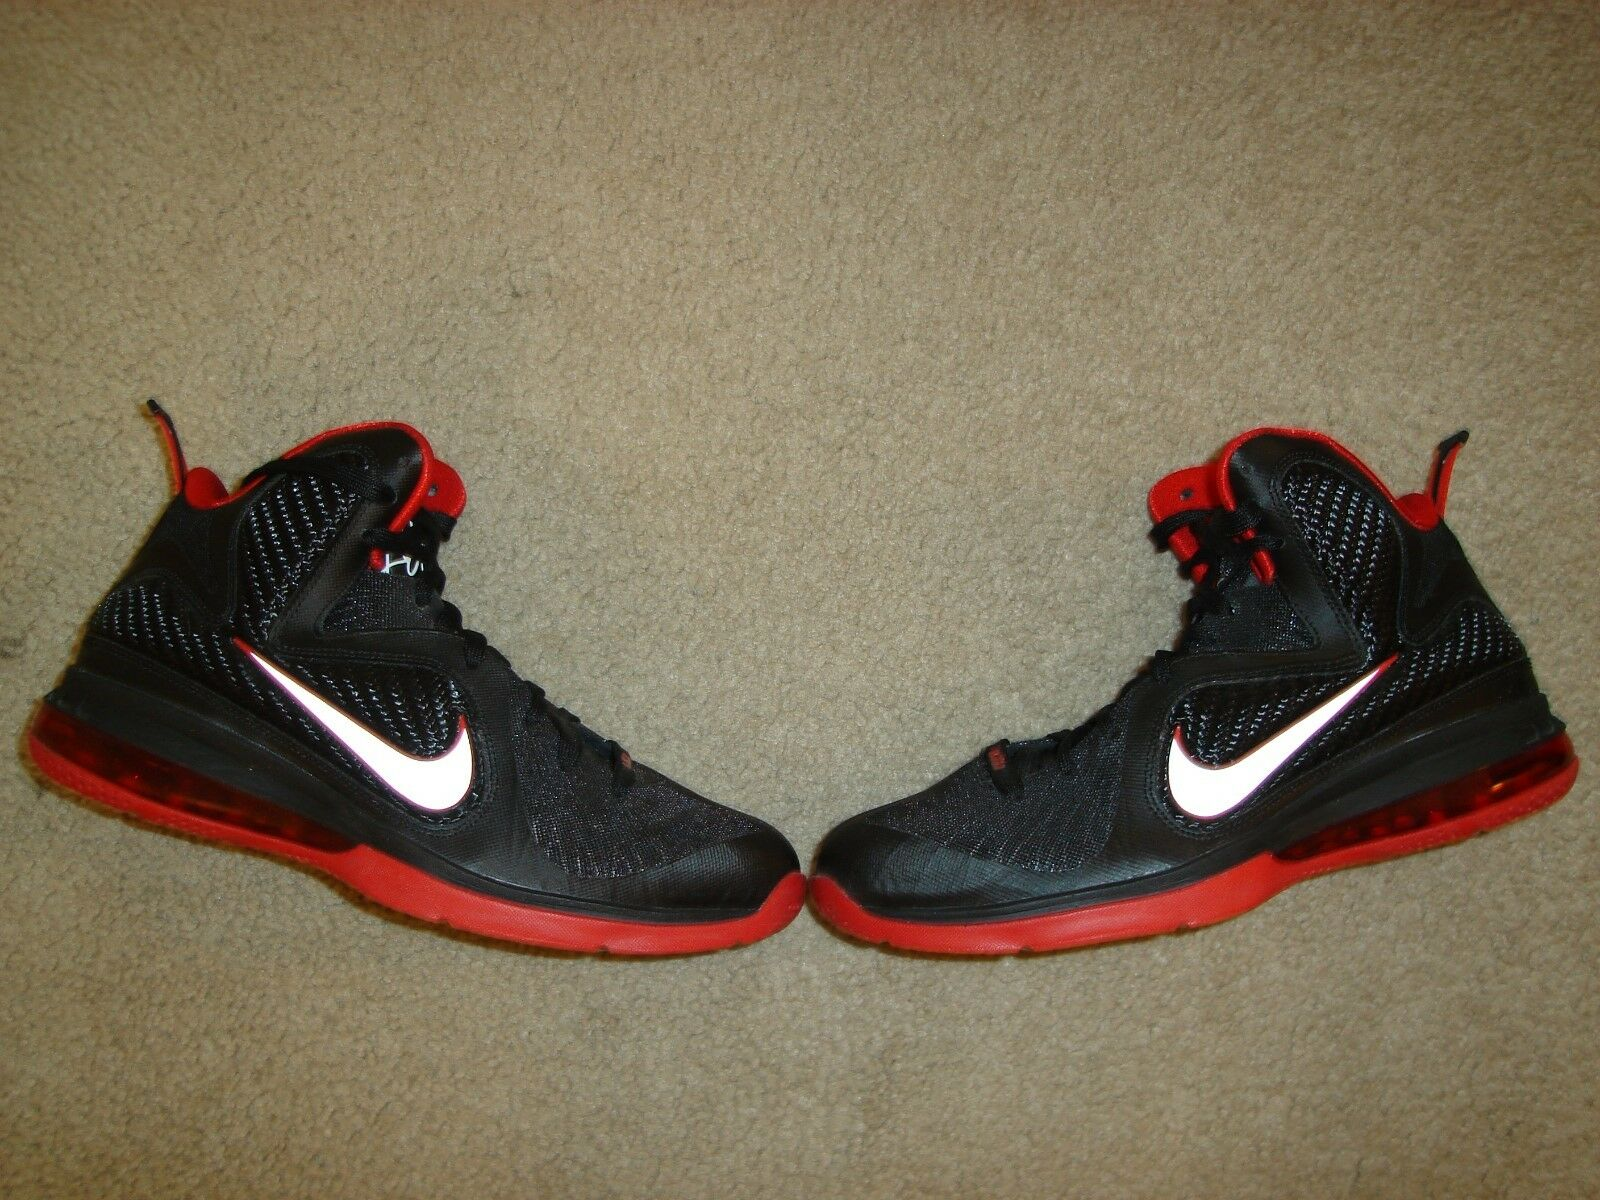 Nike Lebron 9 IX Away Black Red White size 9.5 LA Lakers 469764 003